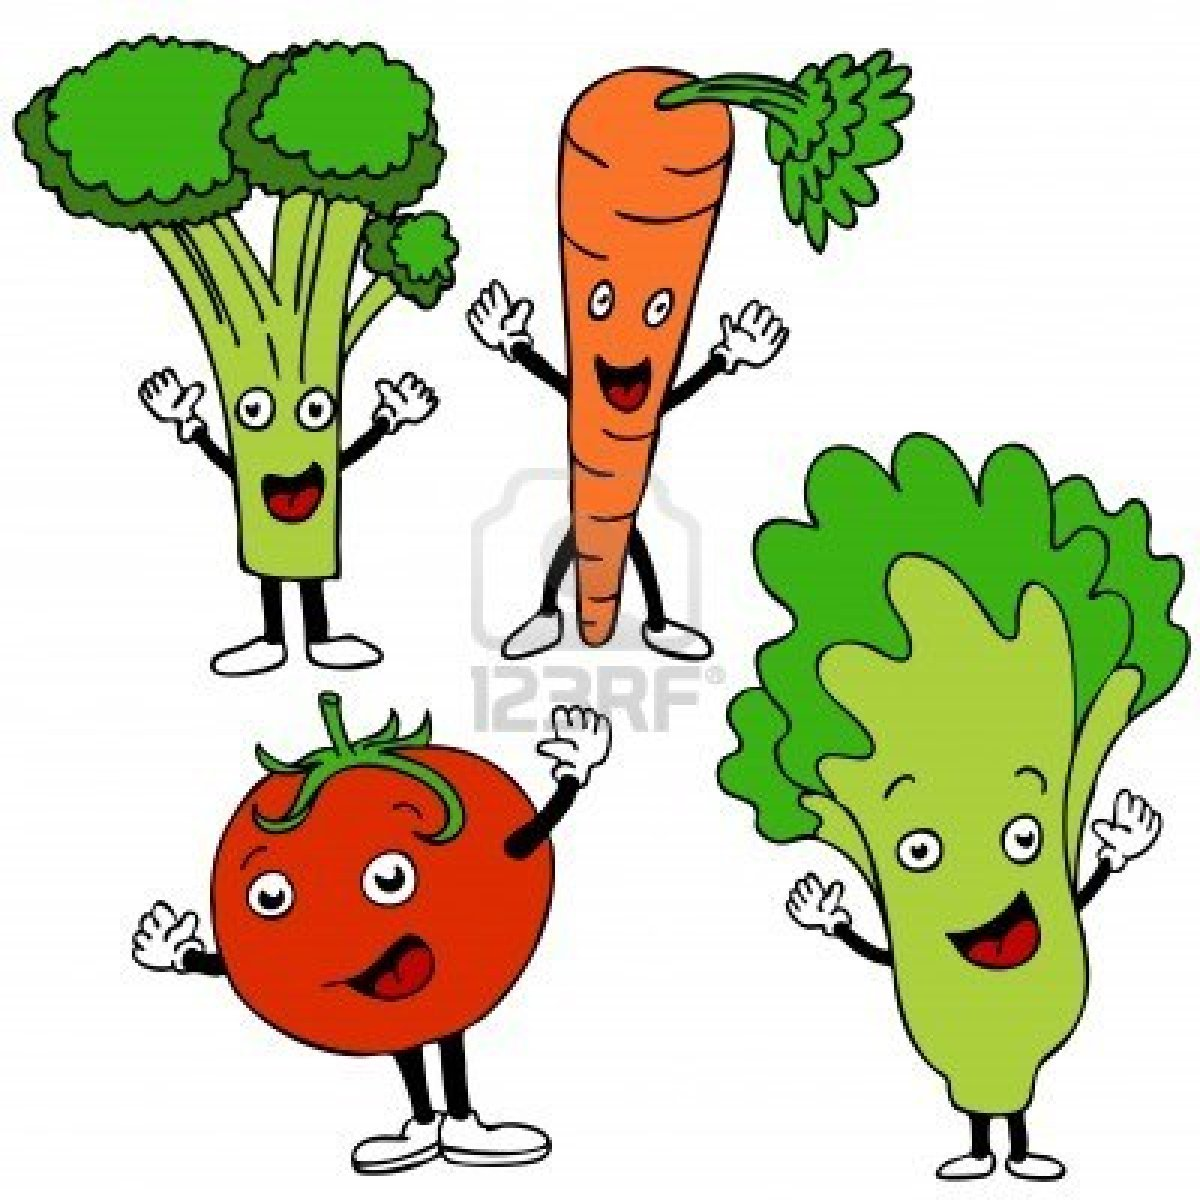 Carrot clipart nutritious food Images Healthy Food Free healthy%20food%20clipart